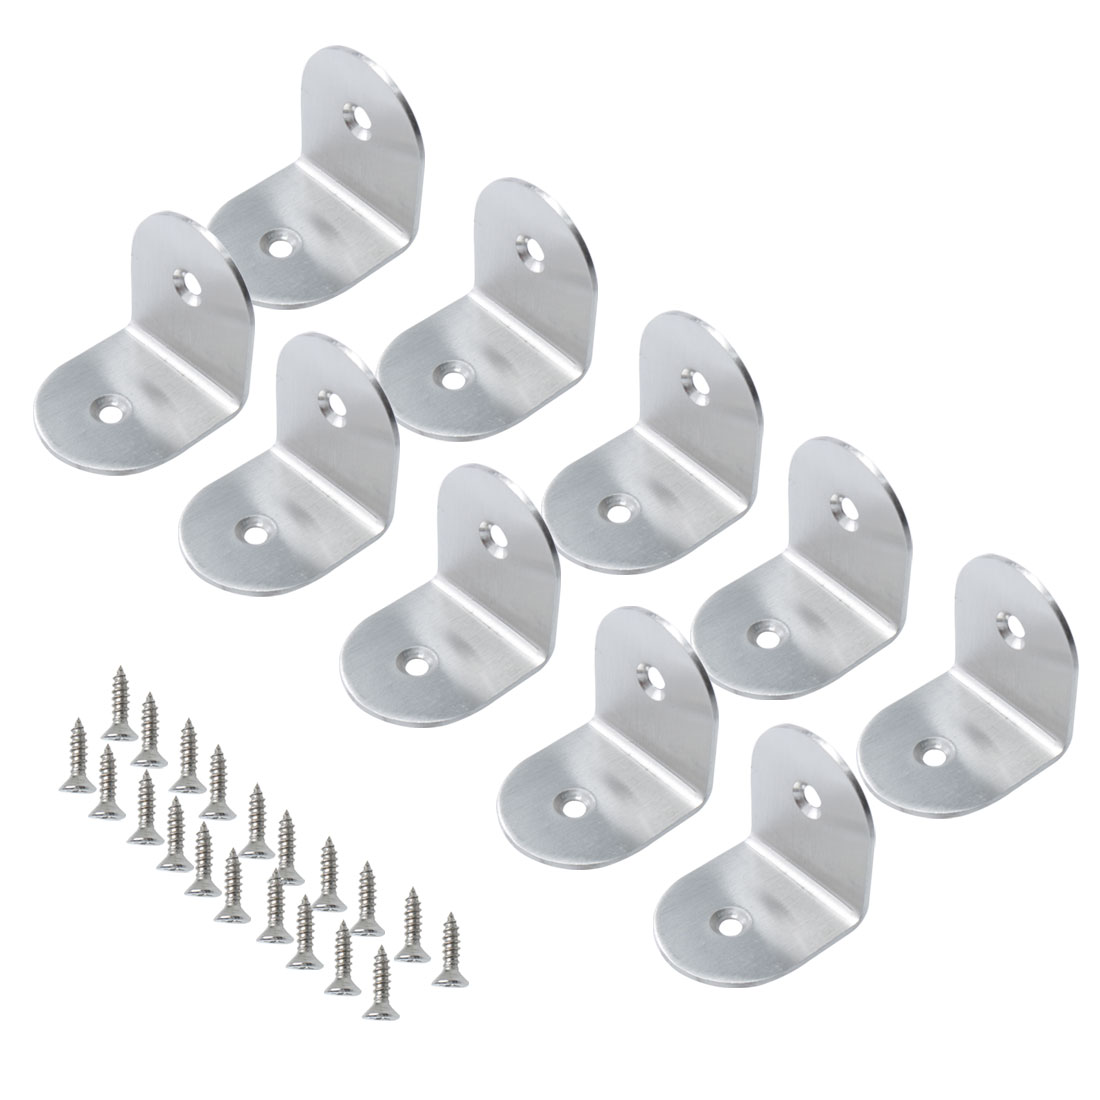 Angle Bracket Stainless Steel Brace Fastener Support w Screw 40x40mm, 10pcs